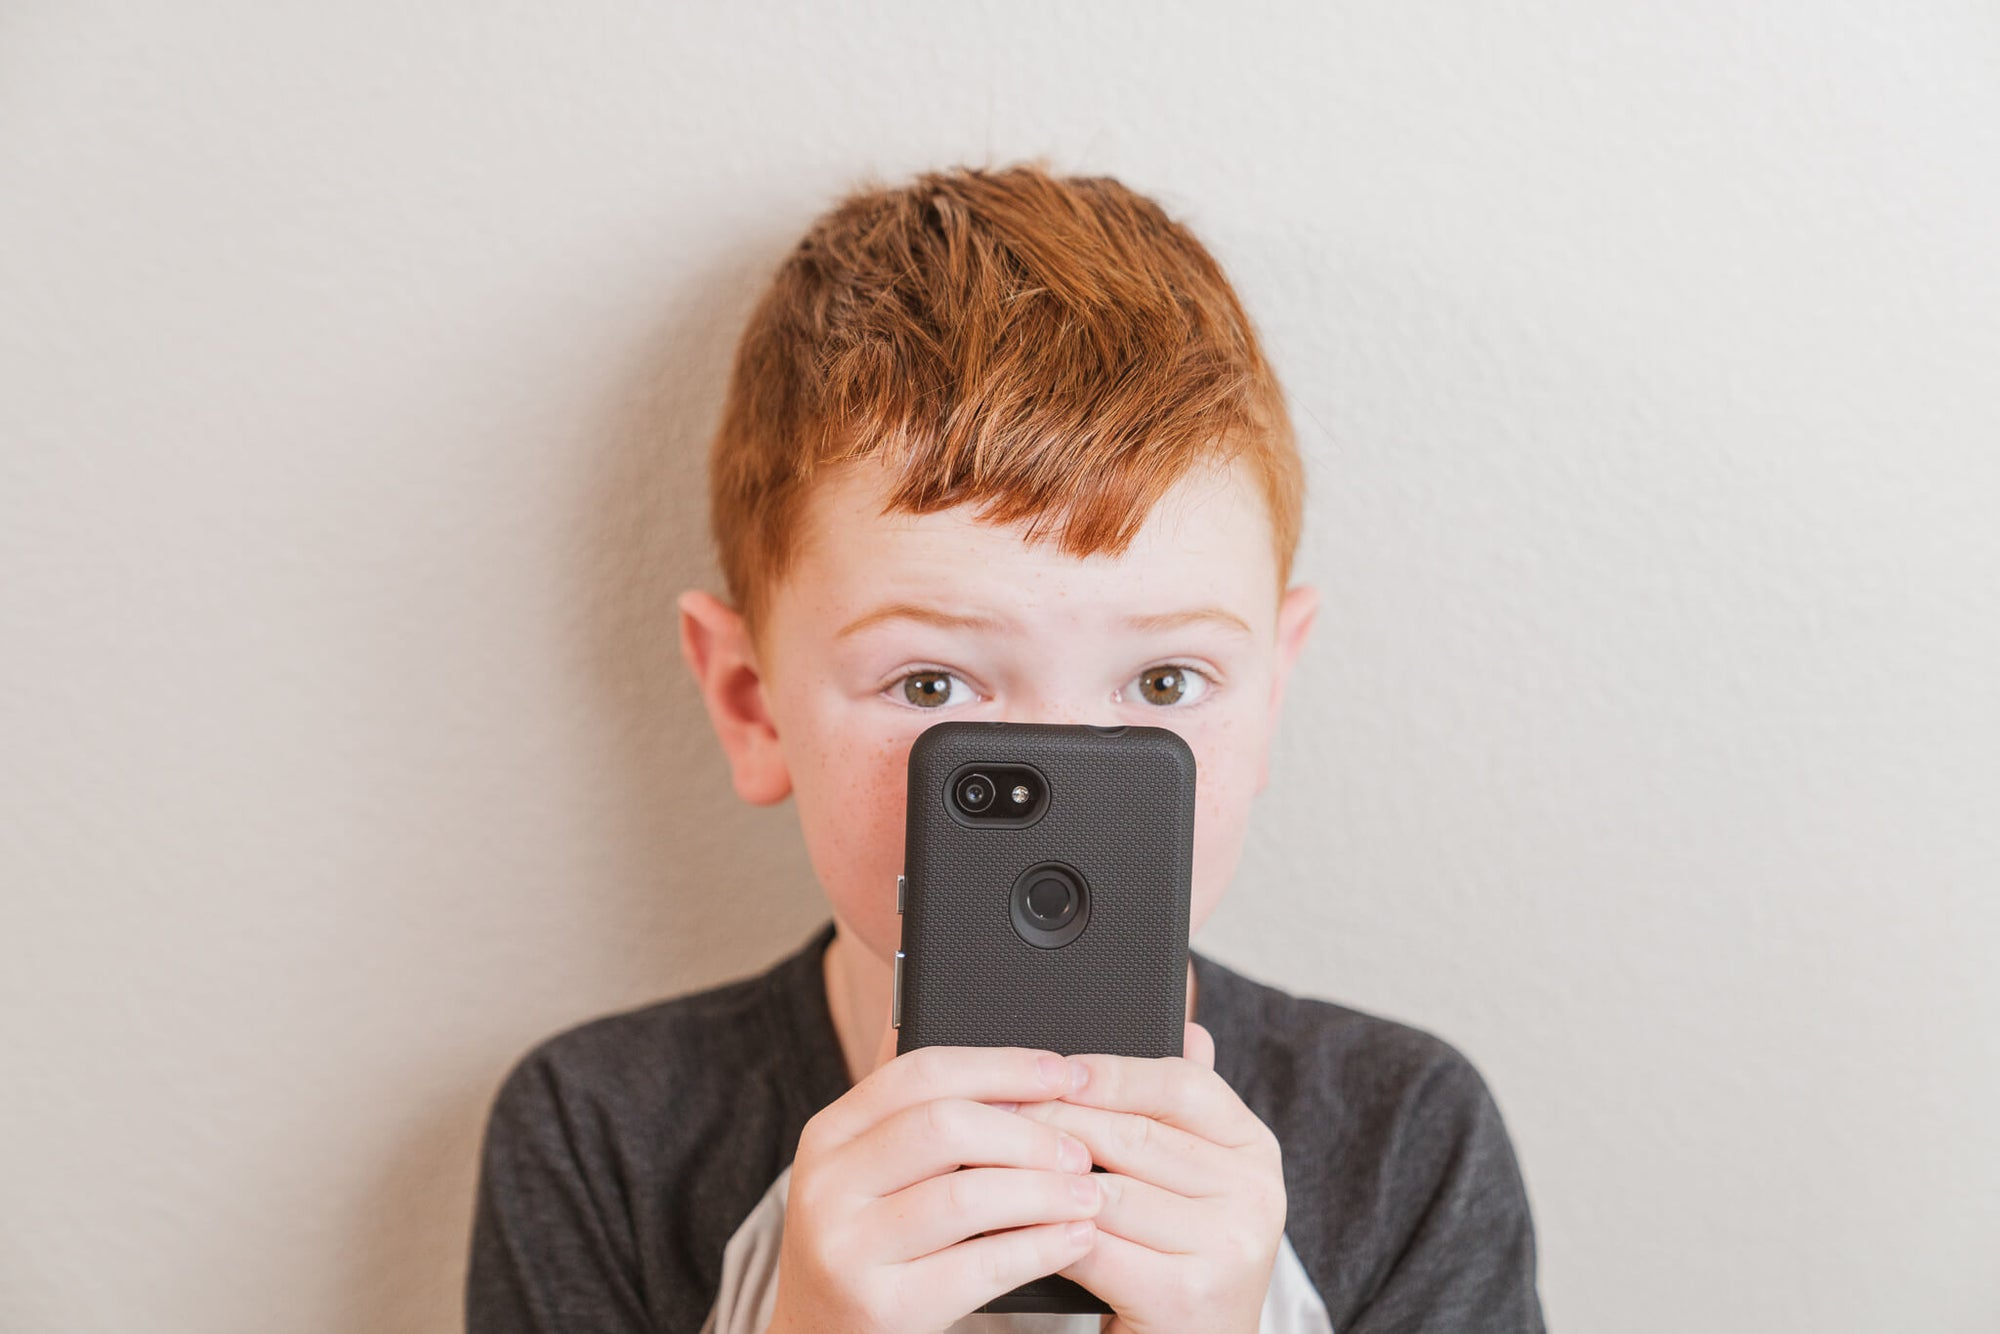 Child Custody: When is it Appropriate to Give a Child a Phone?